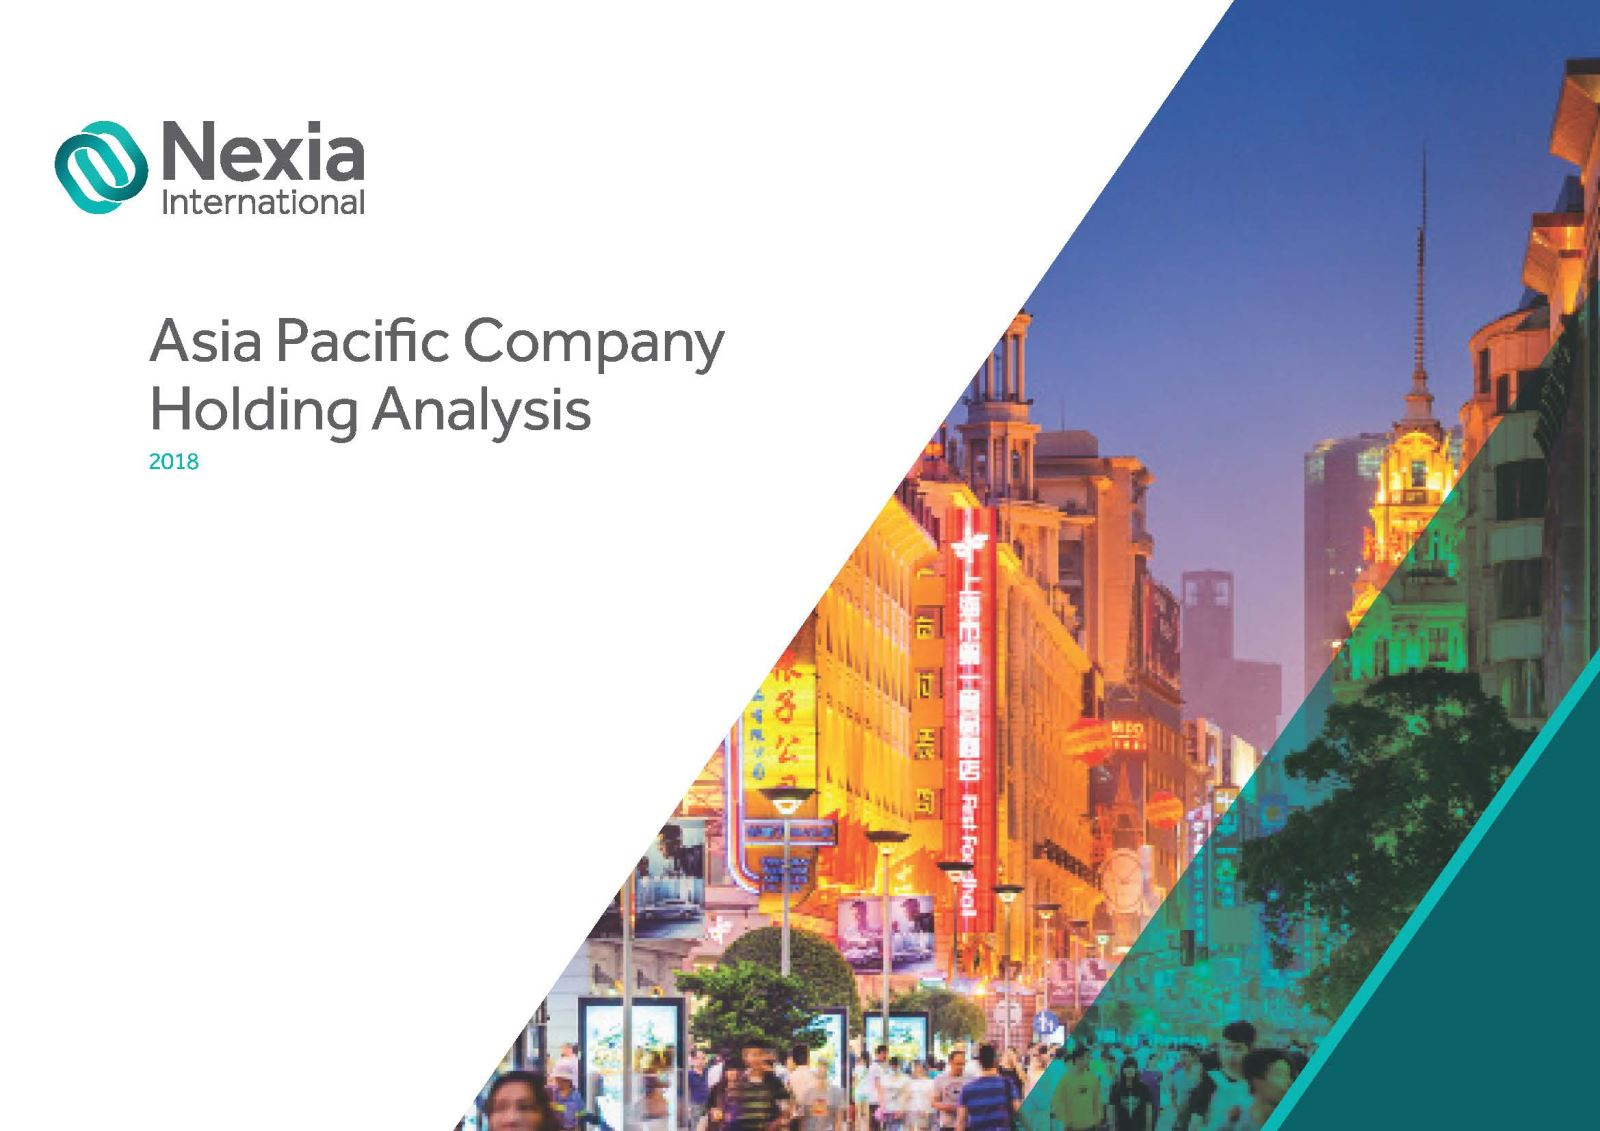 Asia Pacific Holding Company Analysis